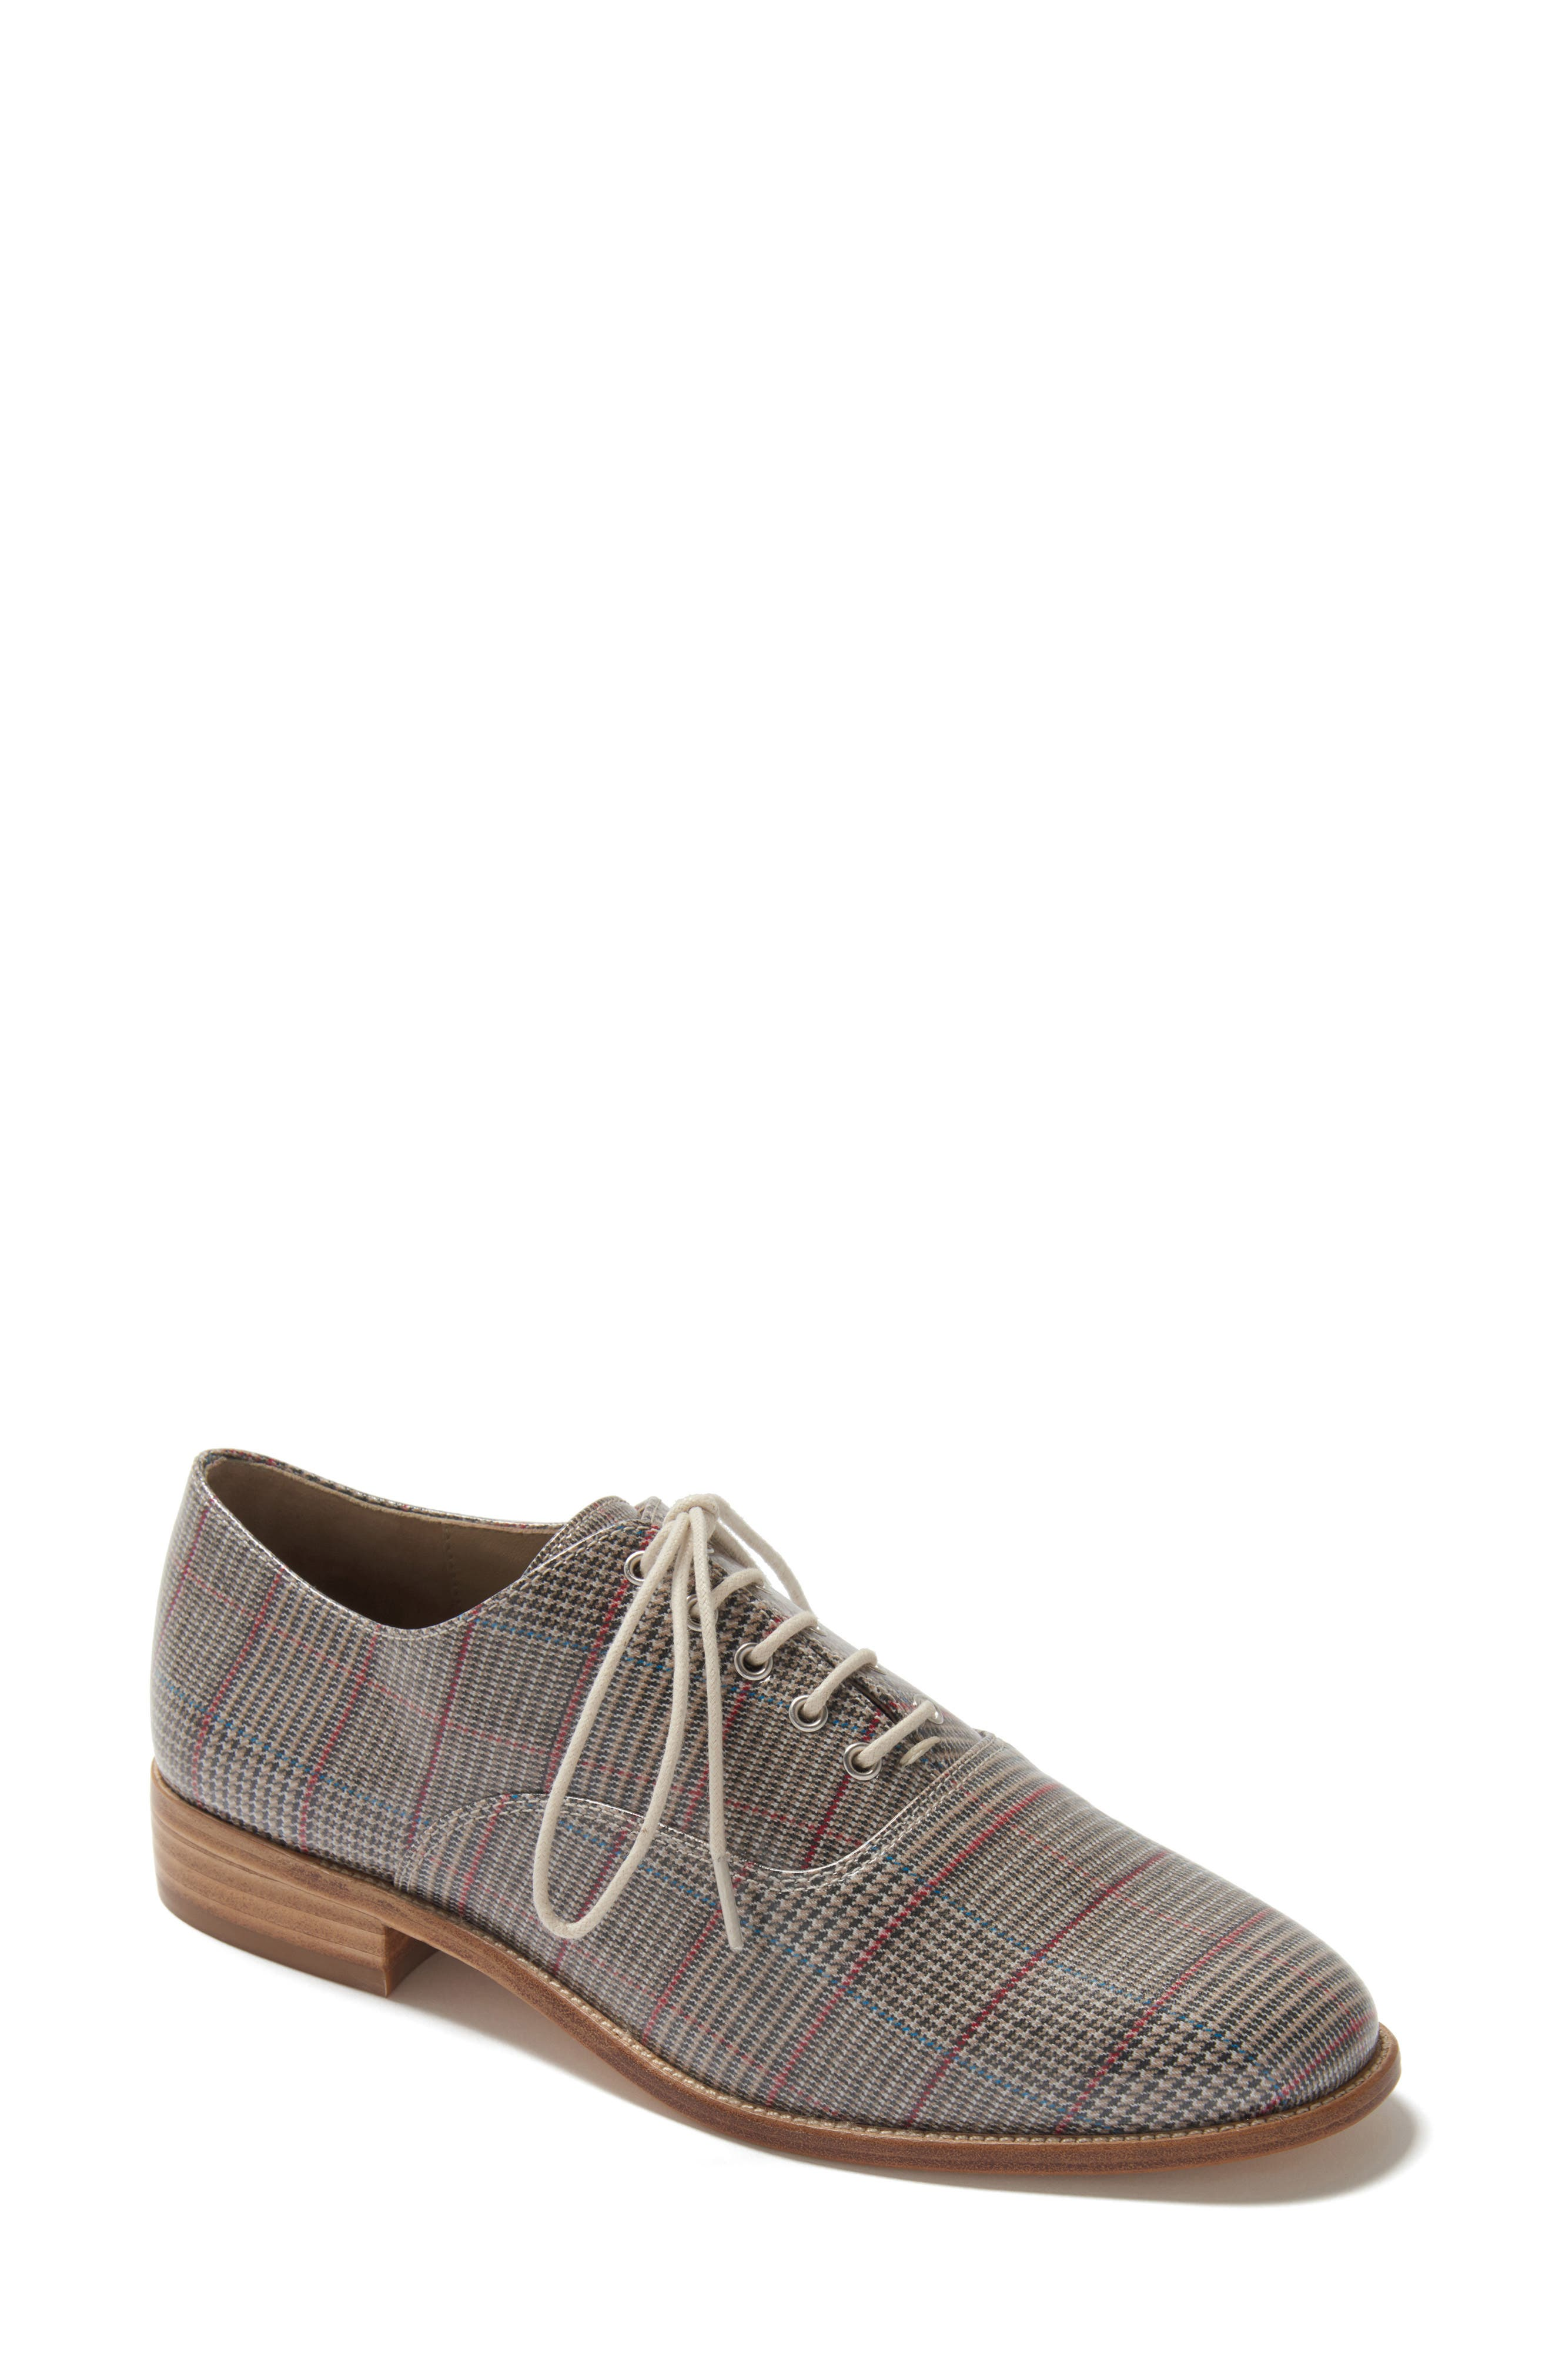 ETIENNE AIGNER Emery Lace-Up Oxford in Stone Multi Glazed Canvas